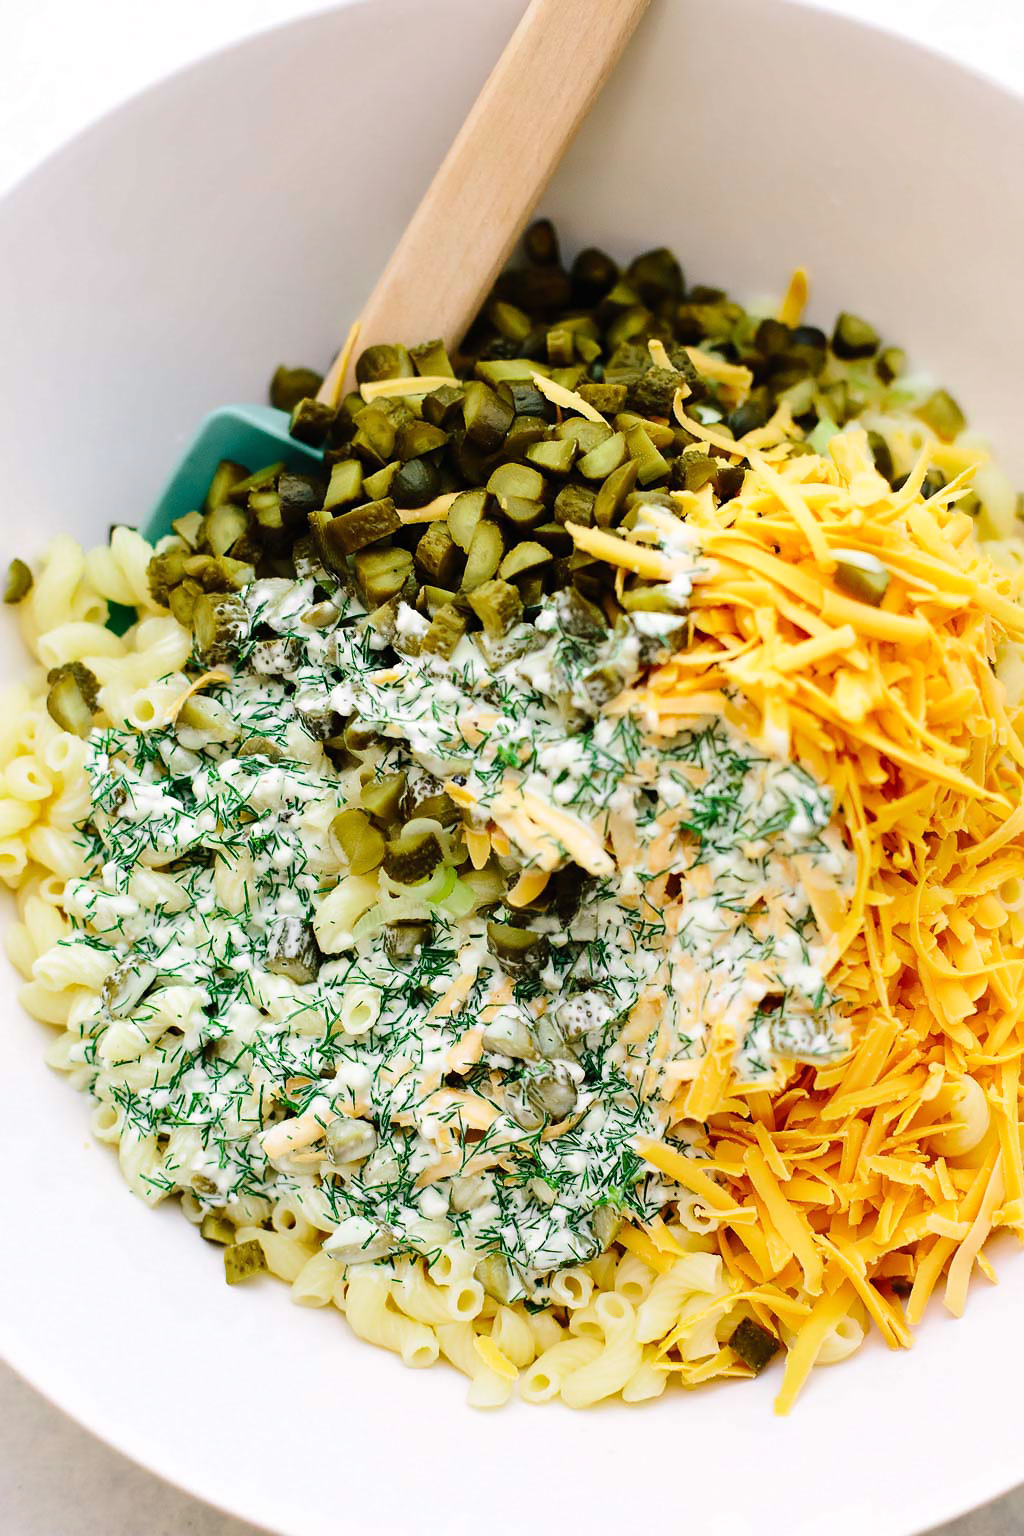 Vegan Dill Pickle Pasta Salad